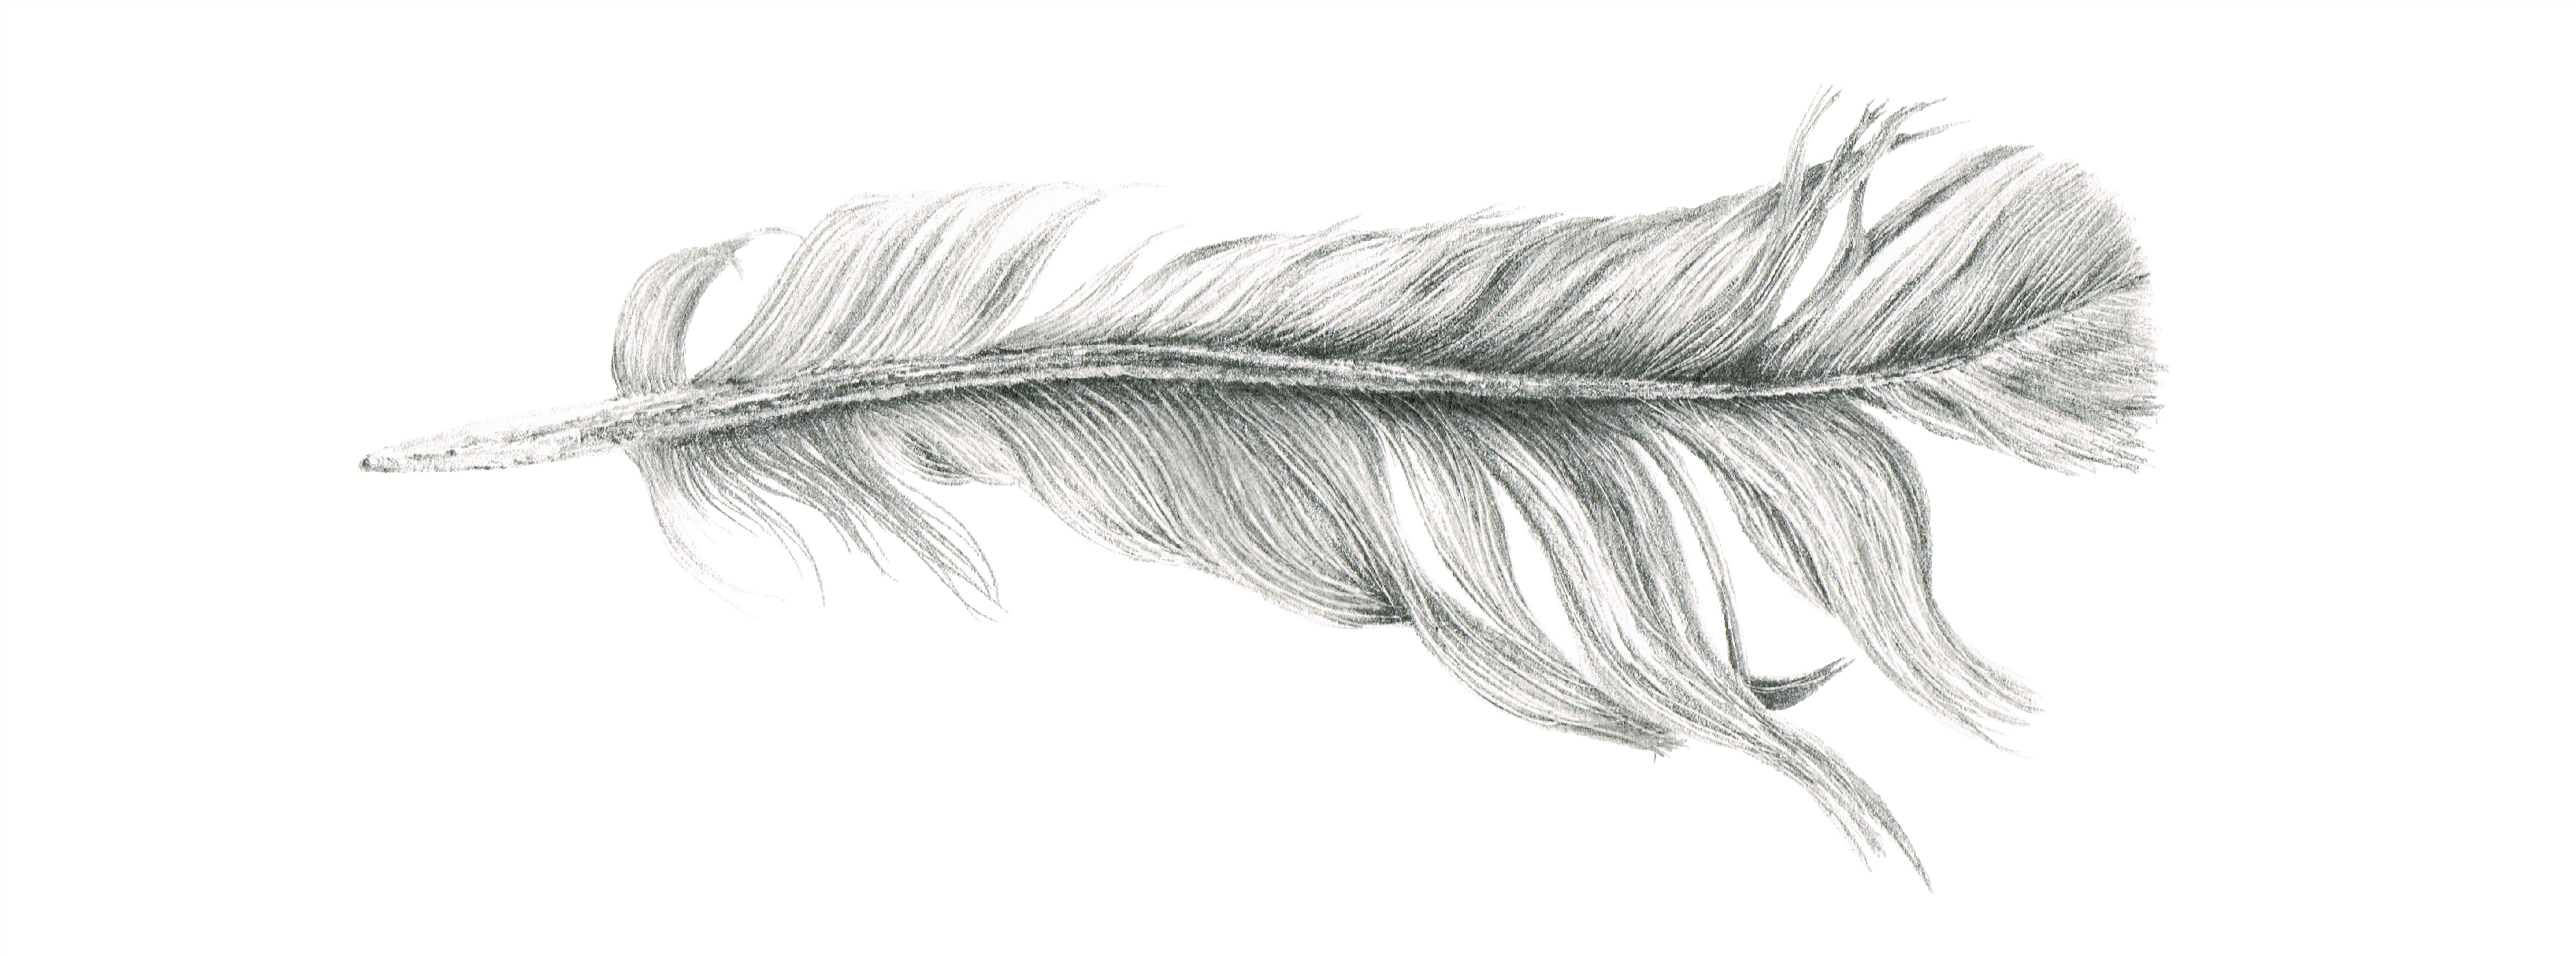 'Feather I' by Louisa Crispin